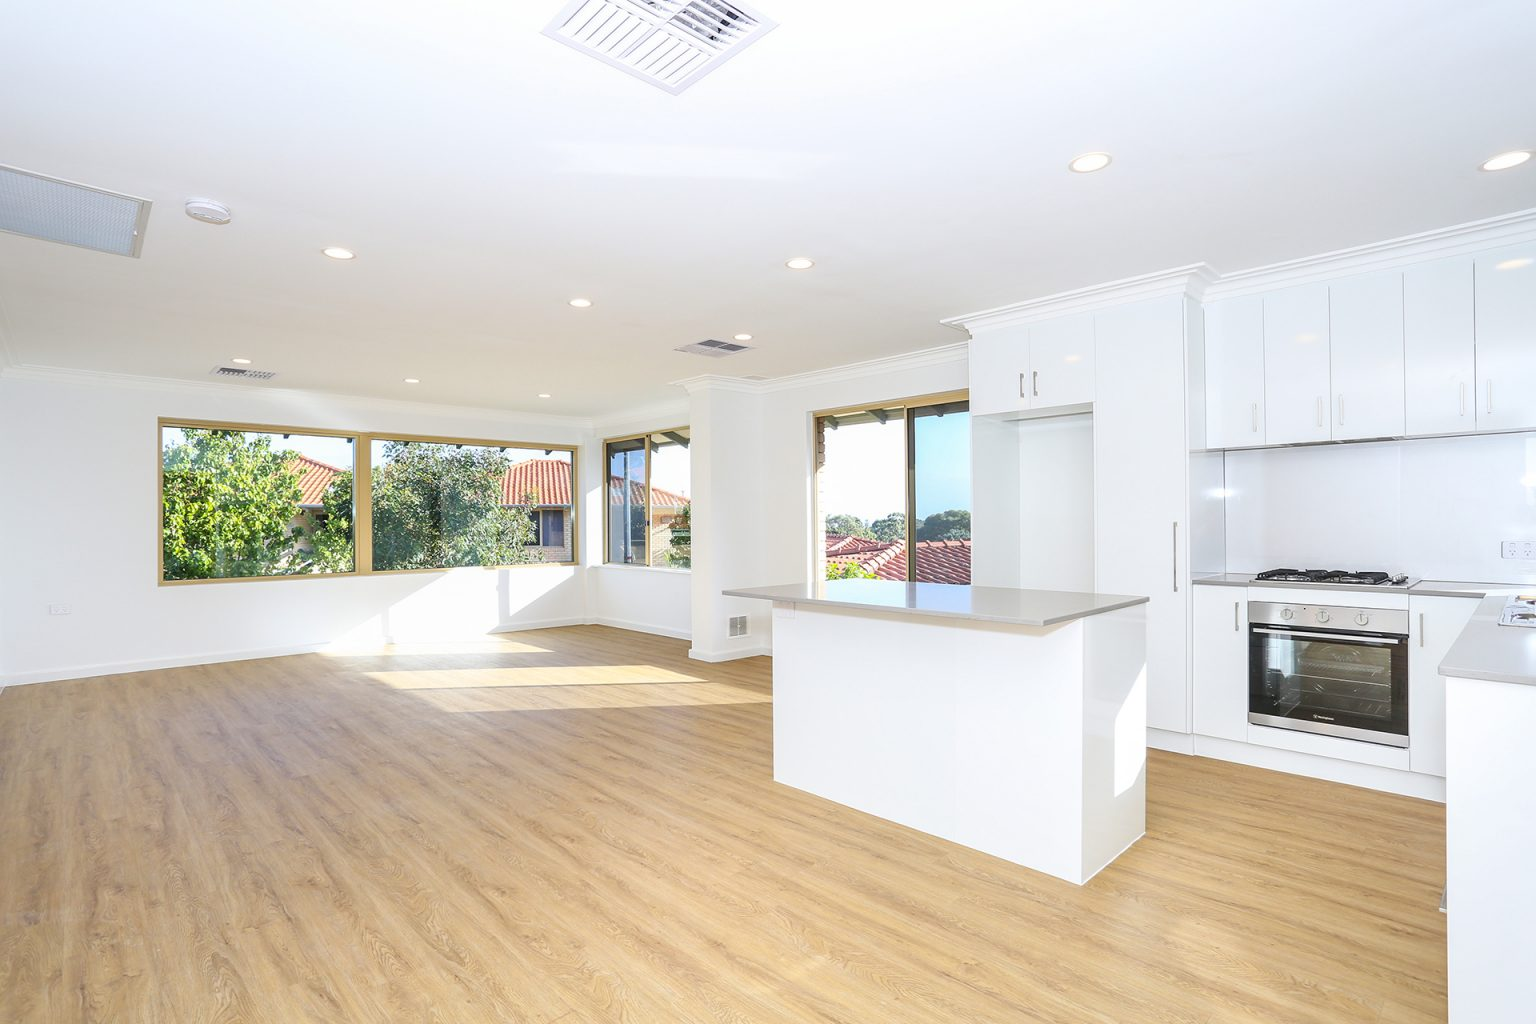 open plan living area of villa for sale with wooden floors, kitchen and large windows.